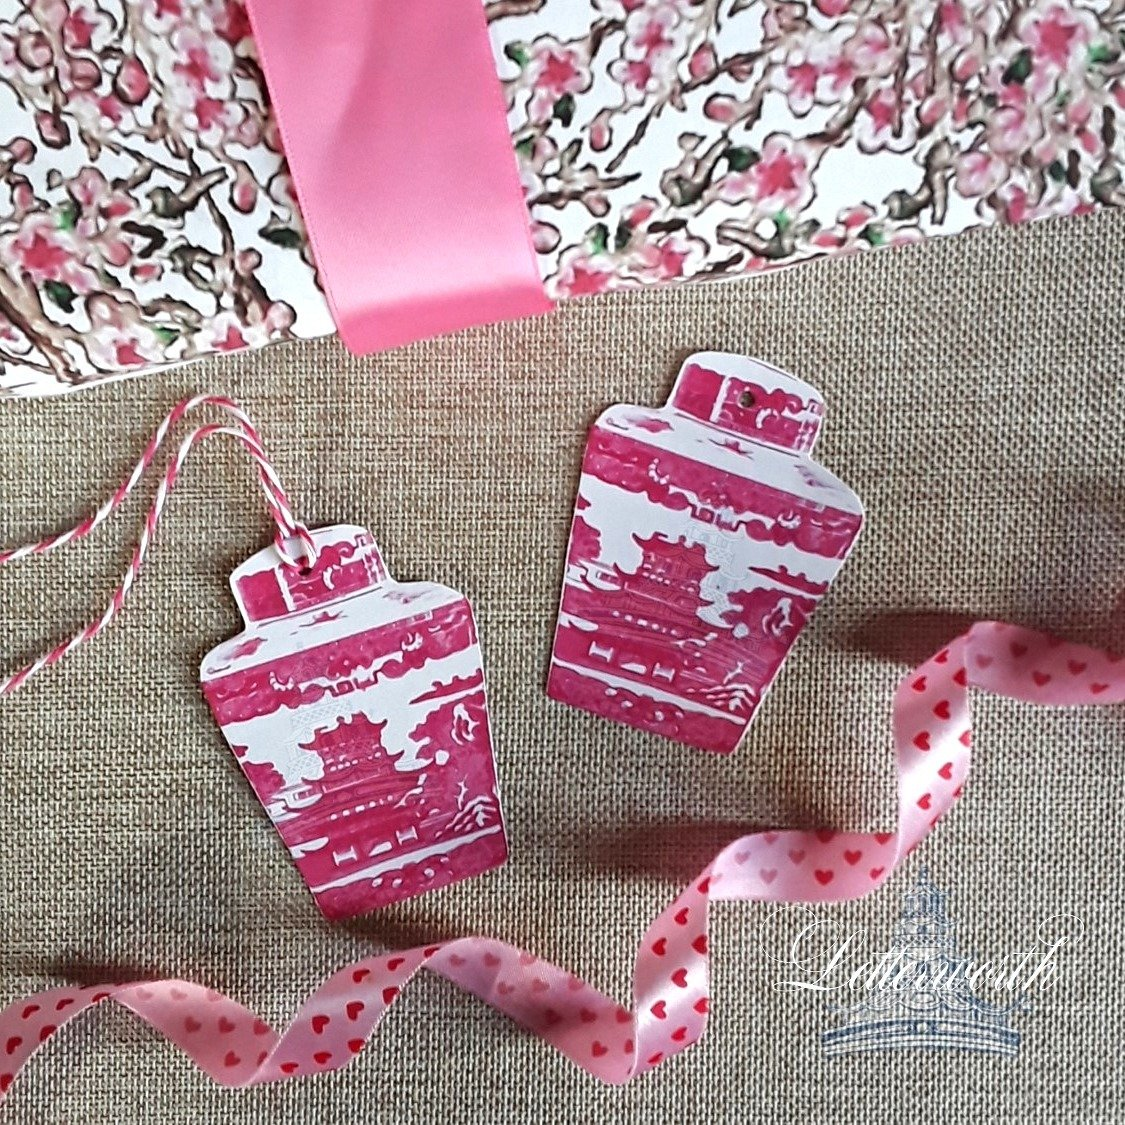 Pink Pagoda Tea Caddy Chinoiserie Gift Tags by Letterworth (Set of 8)